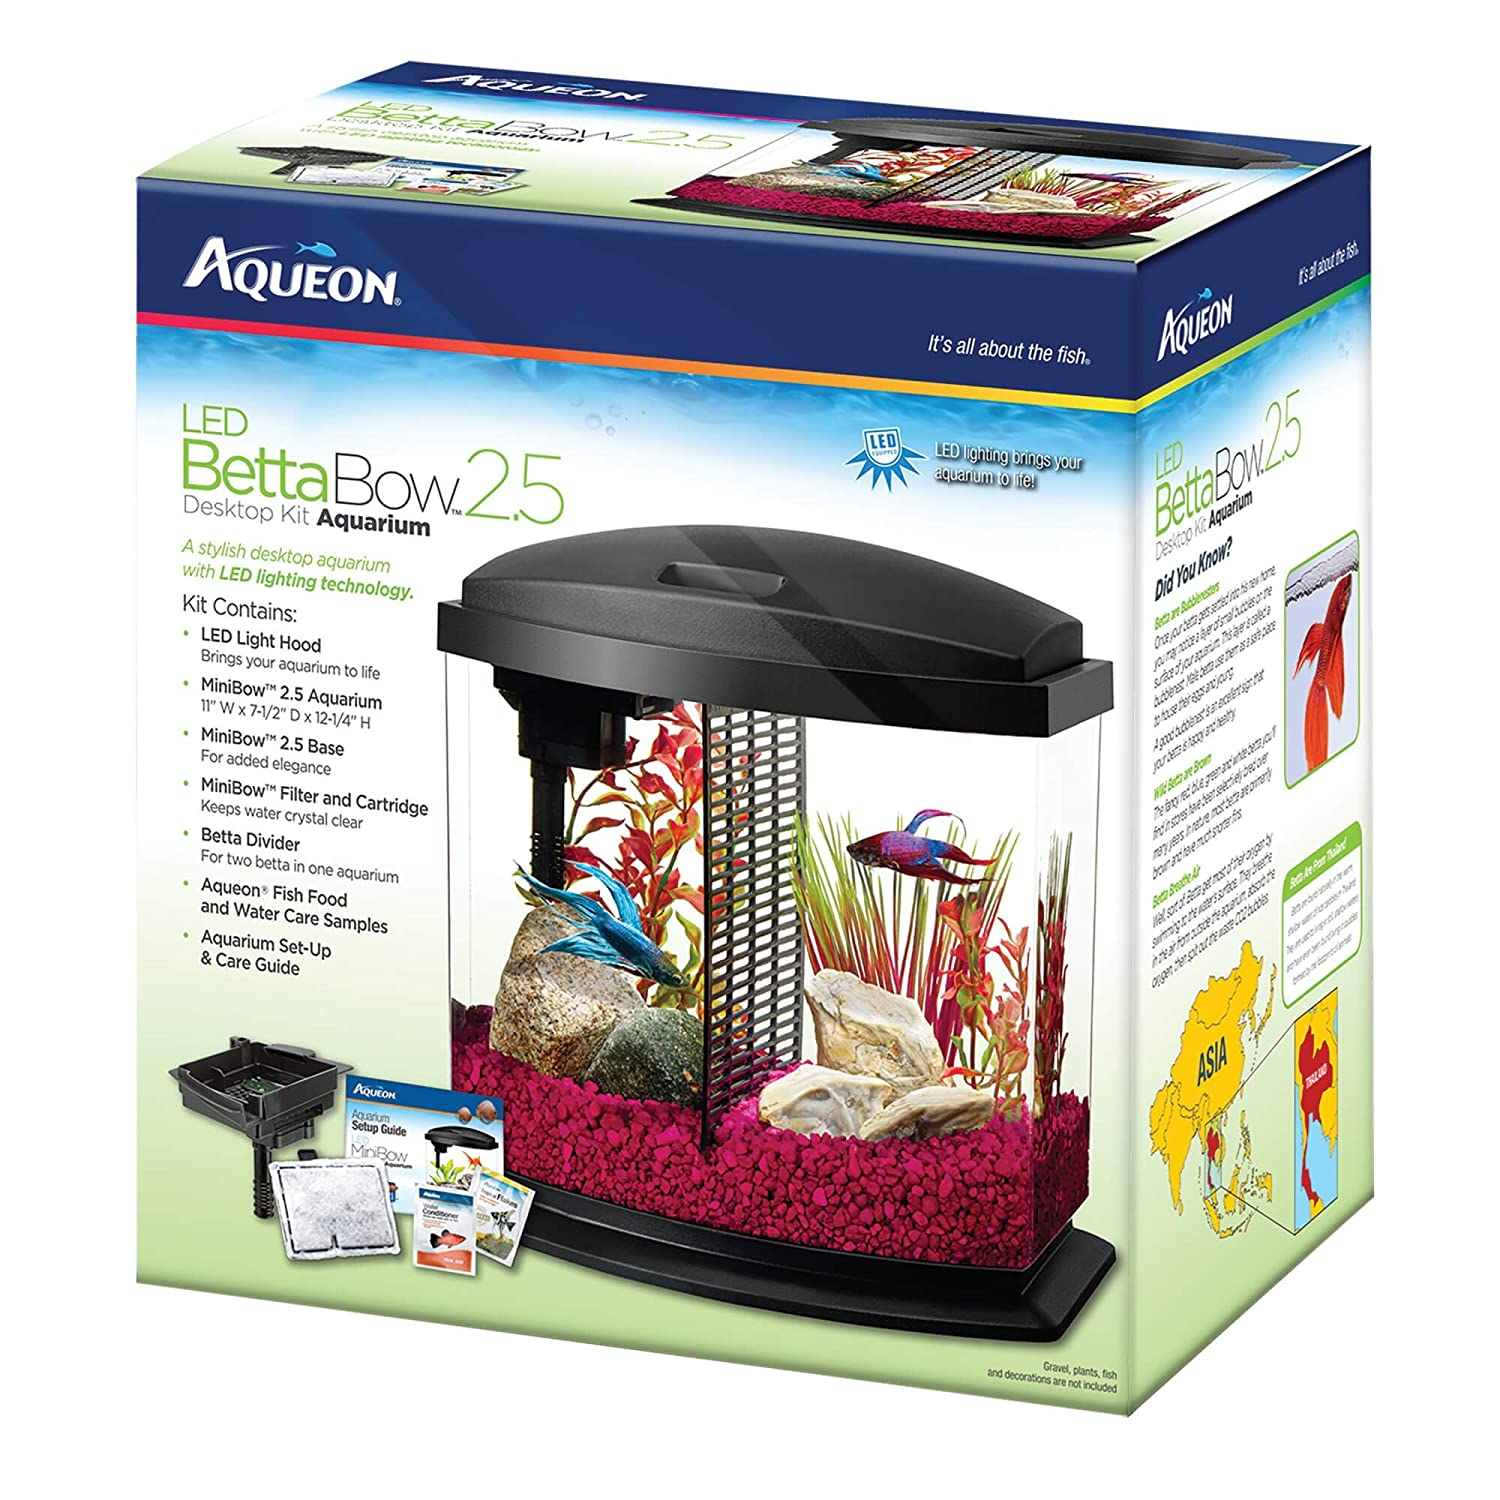 Amazon Aqueon Betta Bow LED Fish Aquarium Kit Pet Supplies